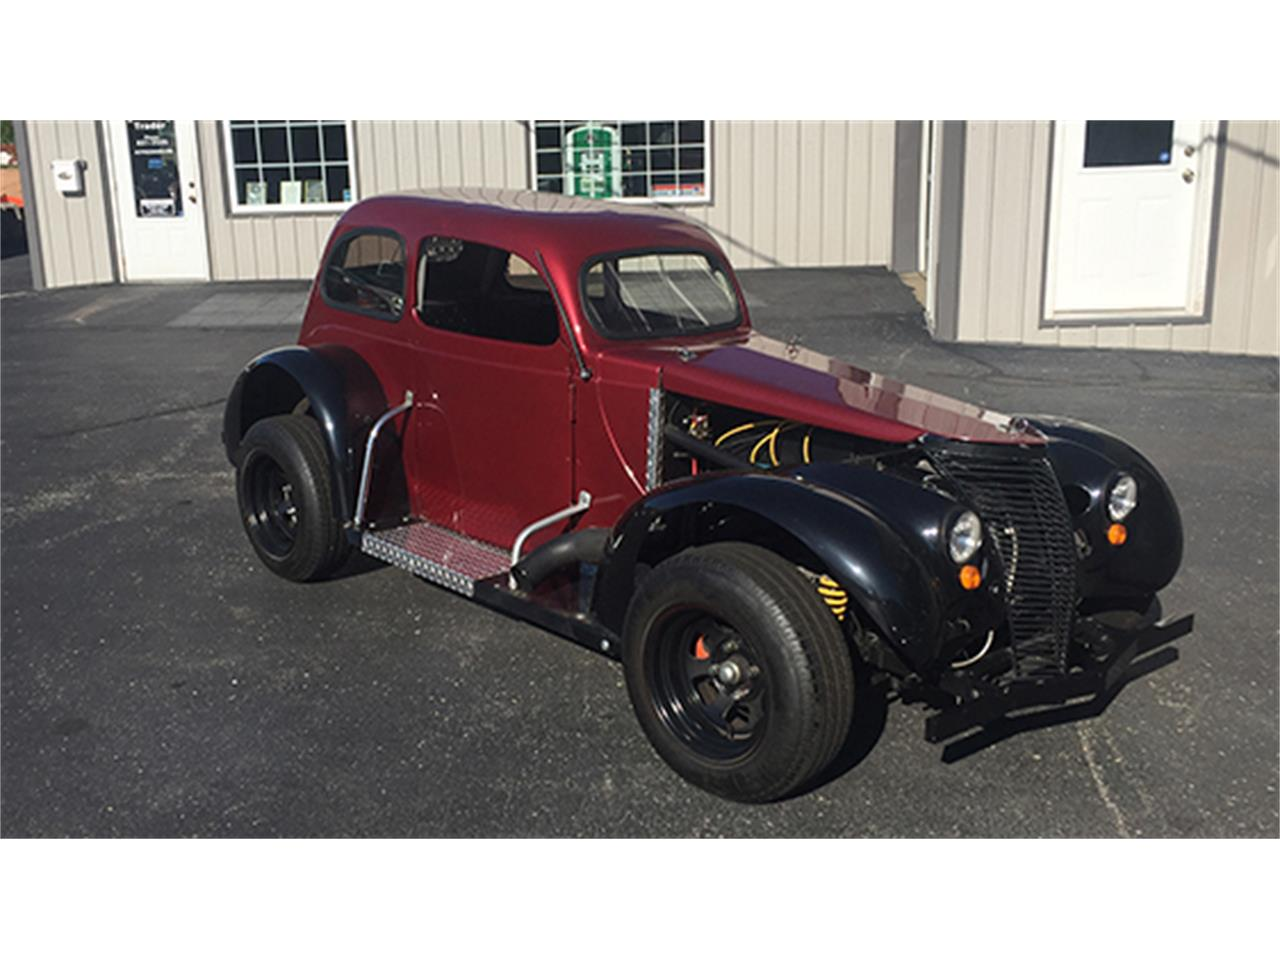 Street Legal Race Cars For Sale >> 1937 Ford Legends Street Legal Race Car For Sale